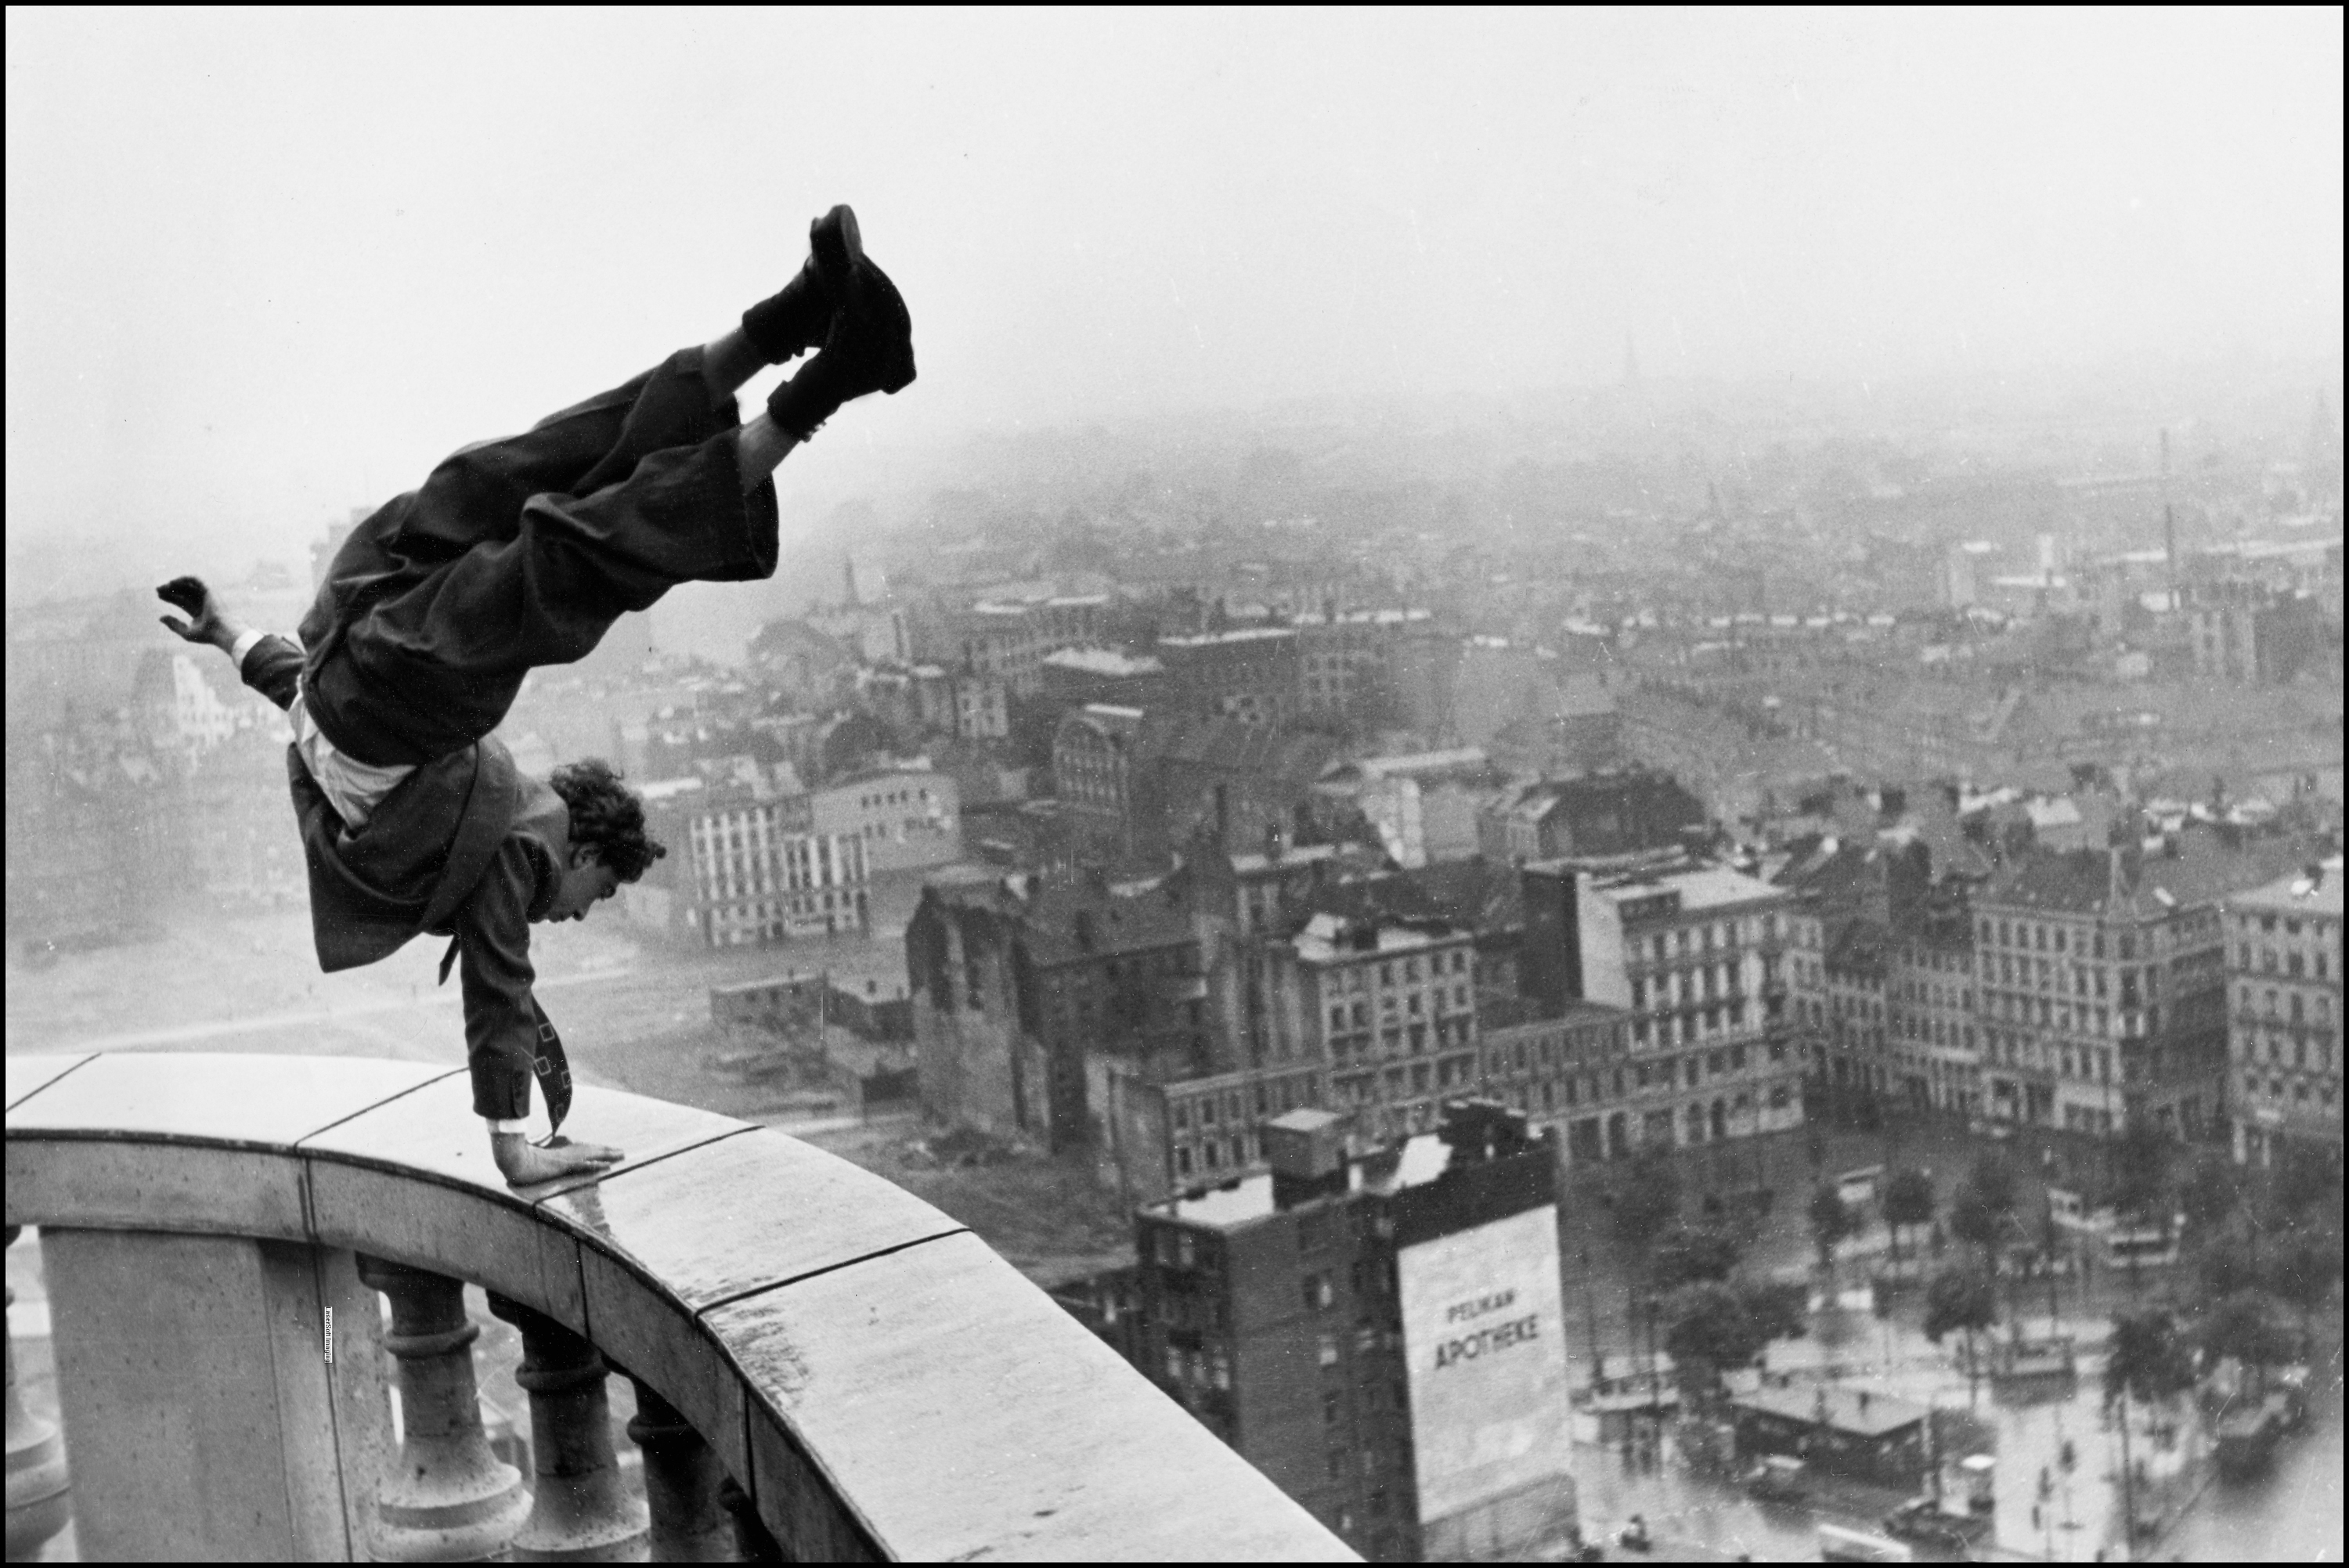 A man in a suit doing a one-armed handstand on a rain-wet balcony railing high above a city, his legs curling over towards the city.